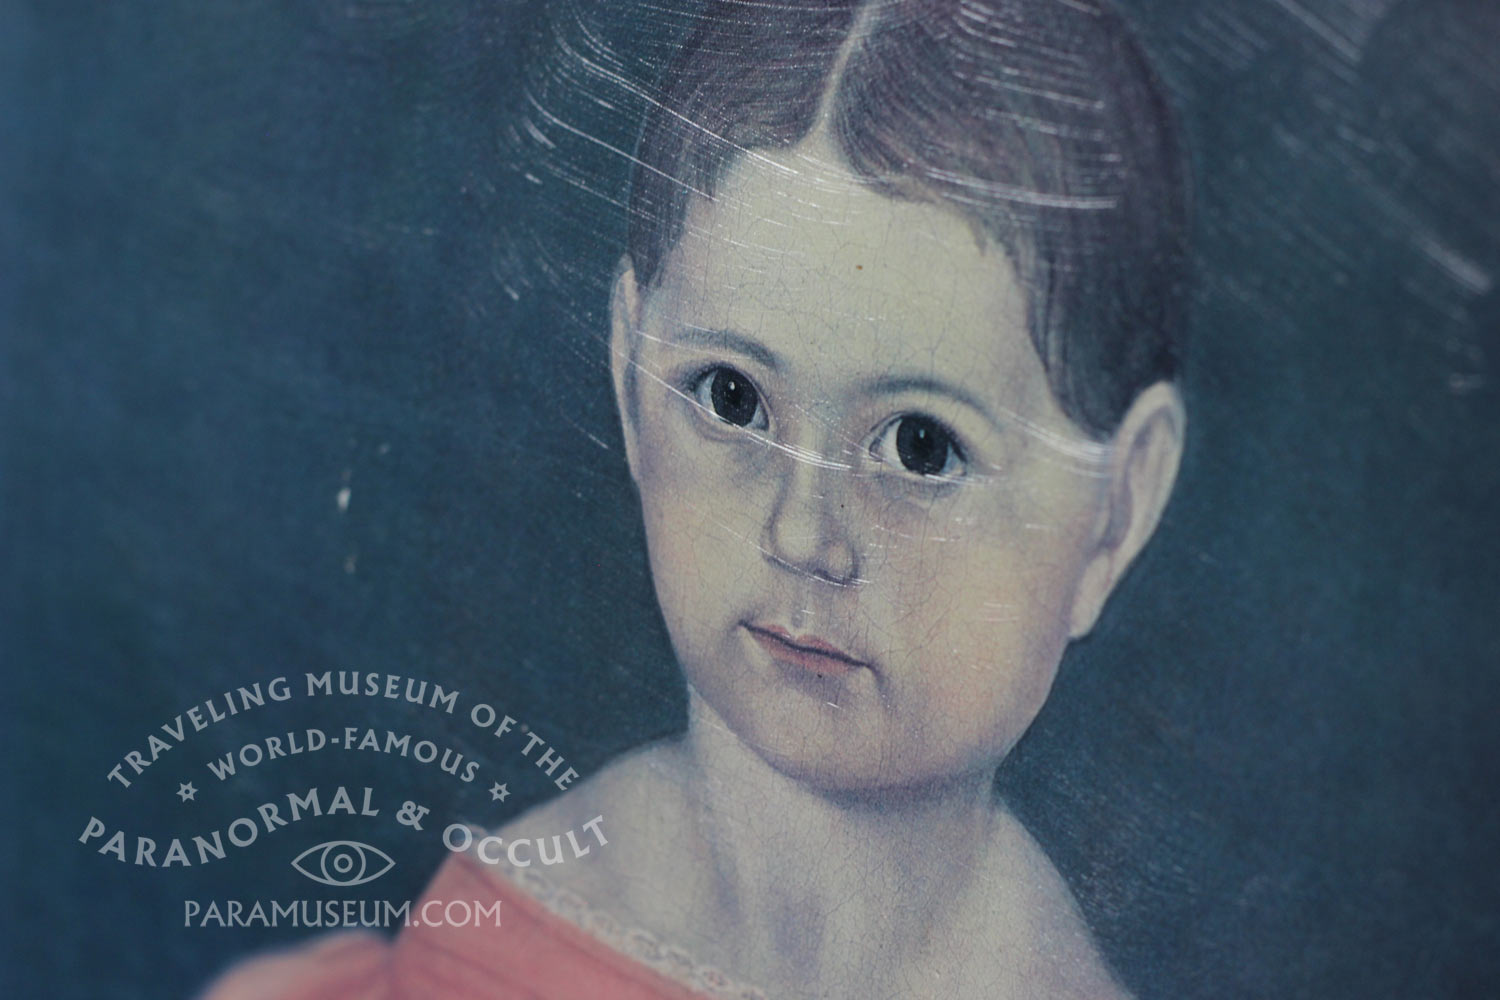 The Restless Painting - Traveling Museum of the Paranormal